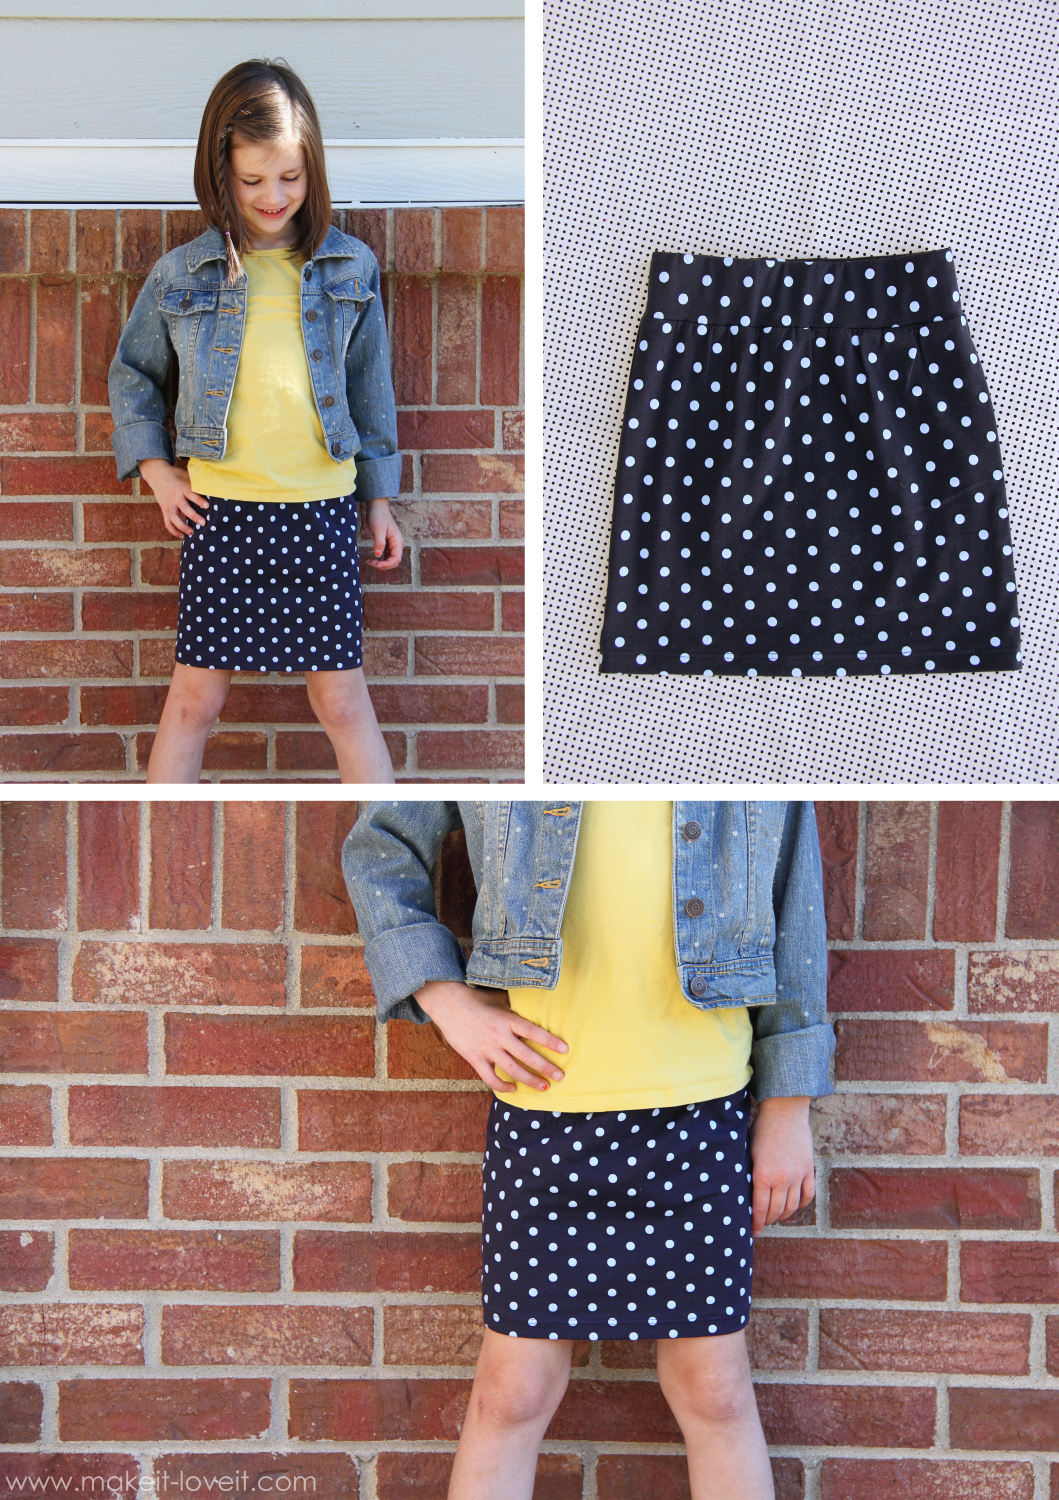 For those times when you need a quick-sew project, Make It Love It offers this super fast 30-minute tube skirt that's great for beginners. -Sewtorial